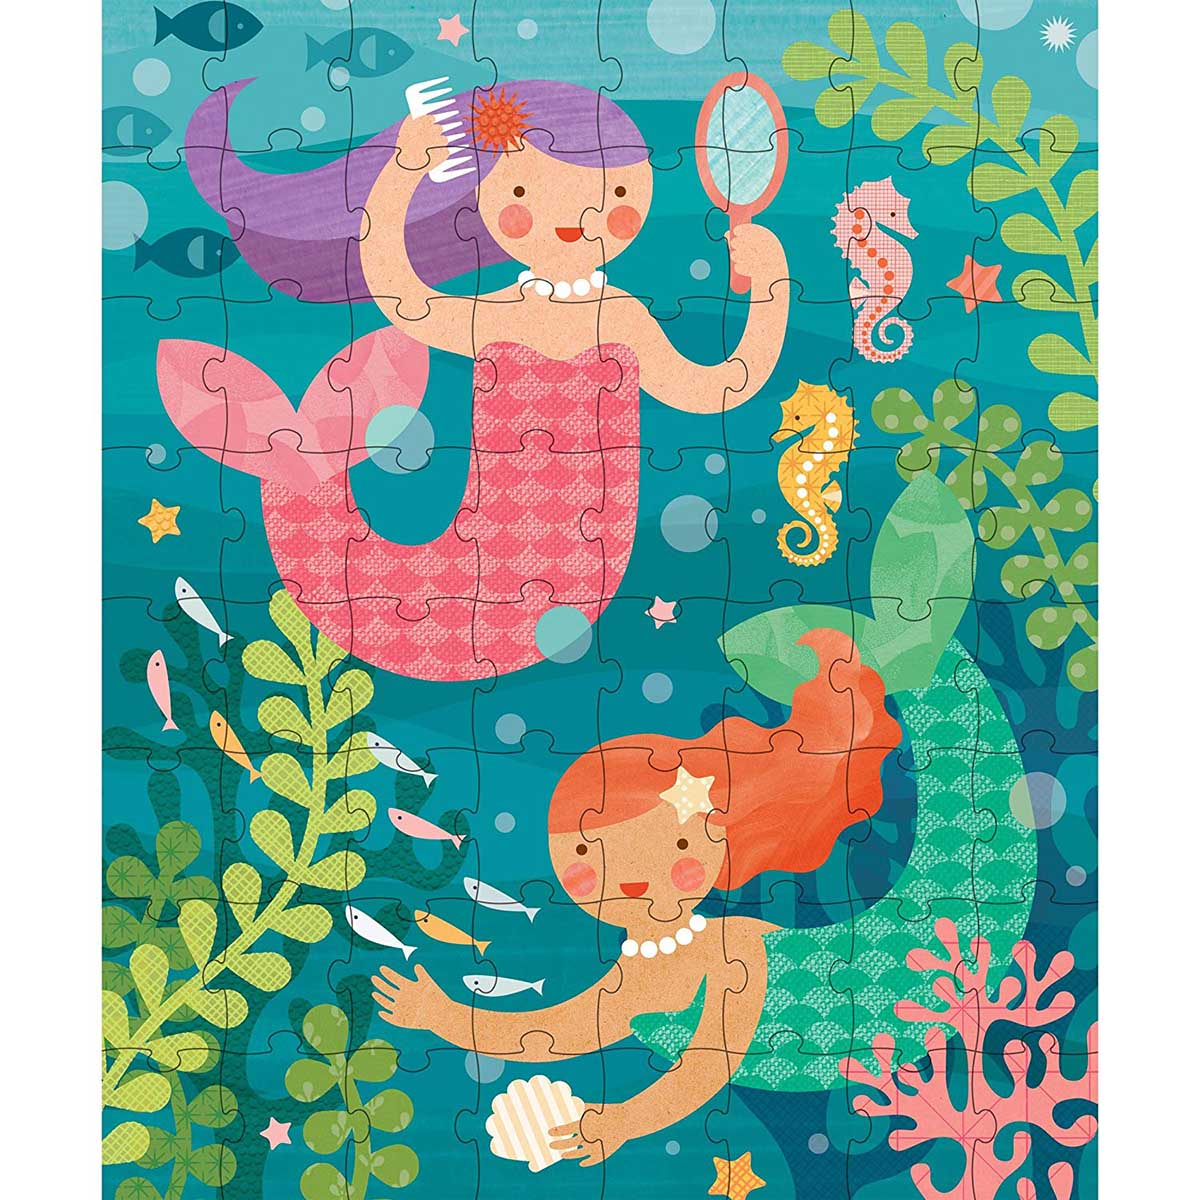 Playful Mermaids Mermaids Jigsaw Puzzle